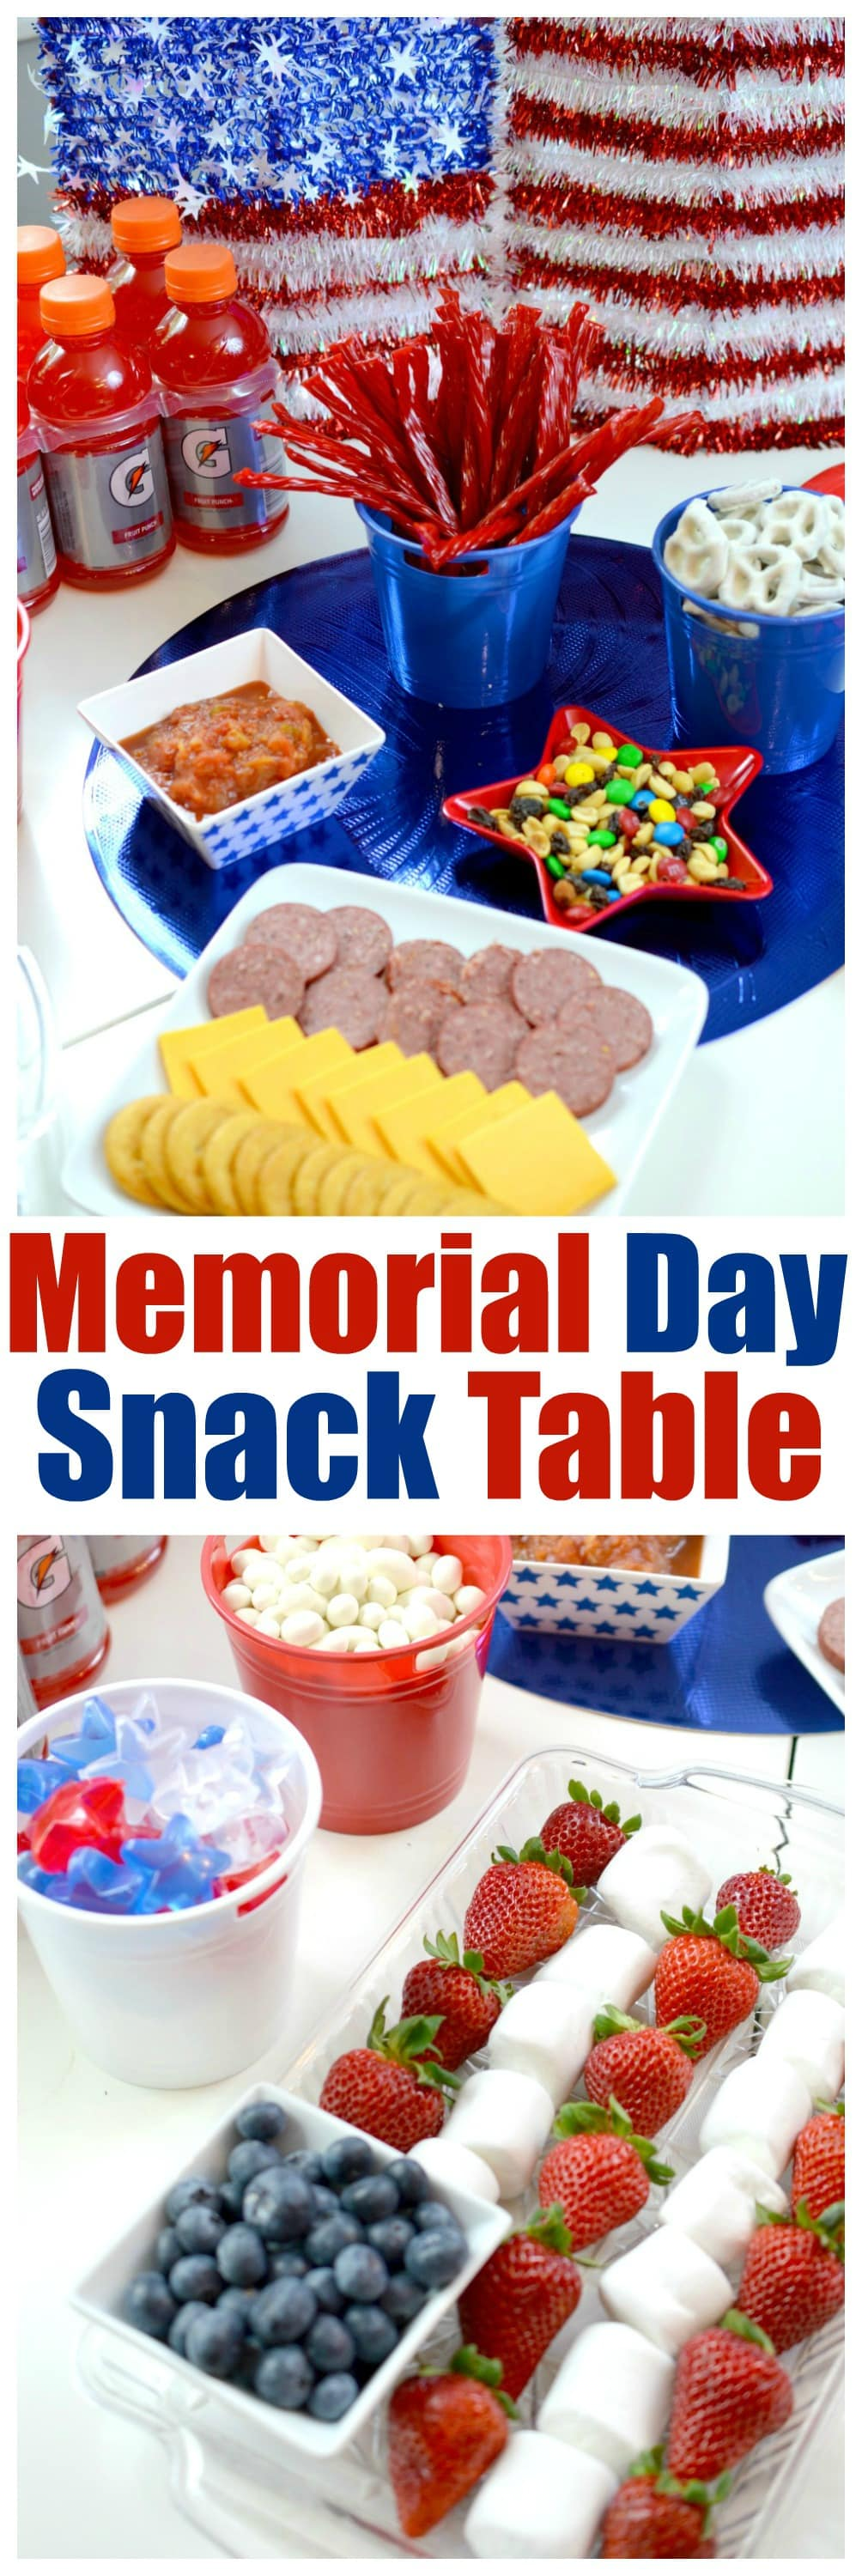 Memorial Day Snack Table